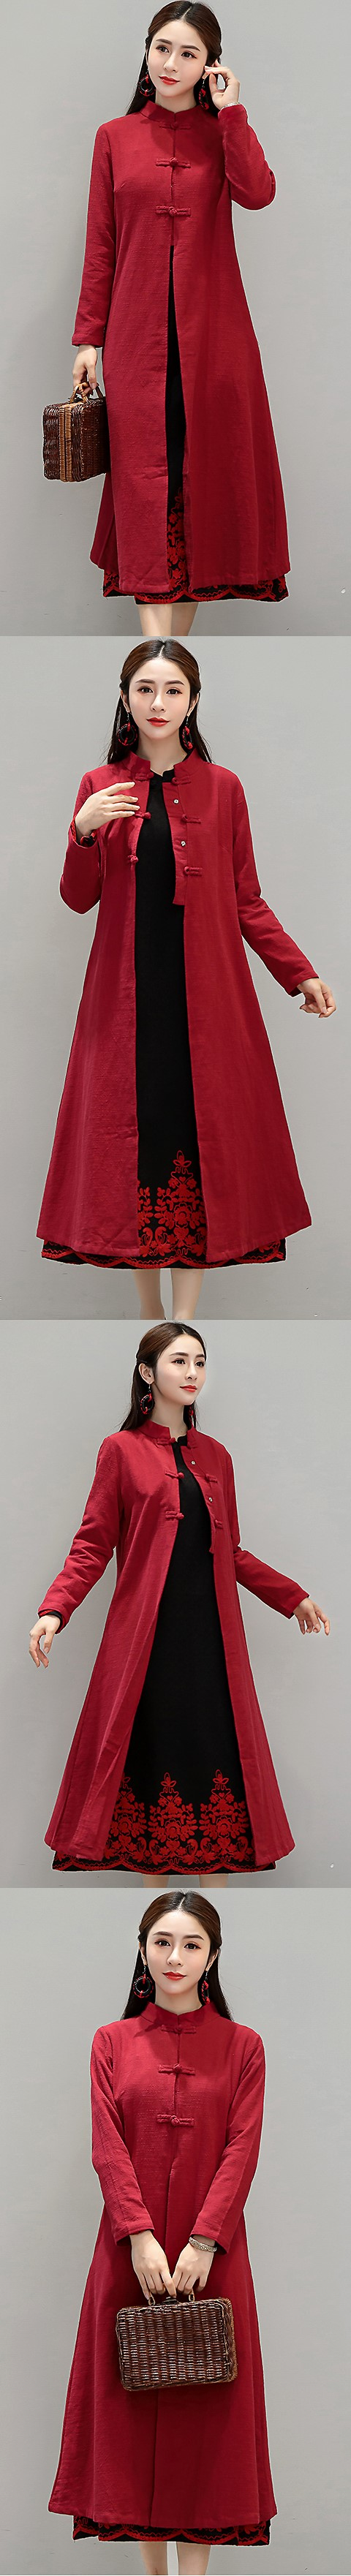 Trendy Ethnic Cotton Linen Autumn Overcoat (RM)